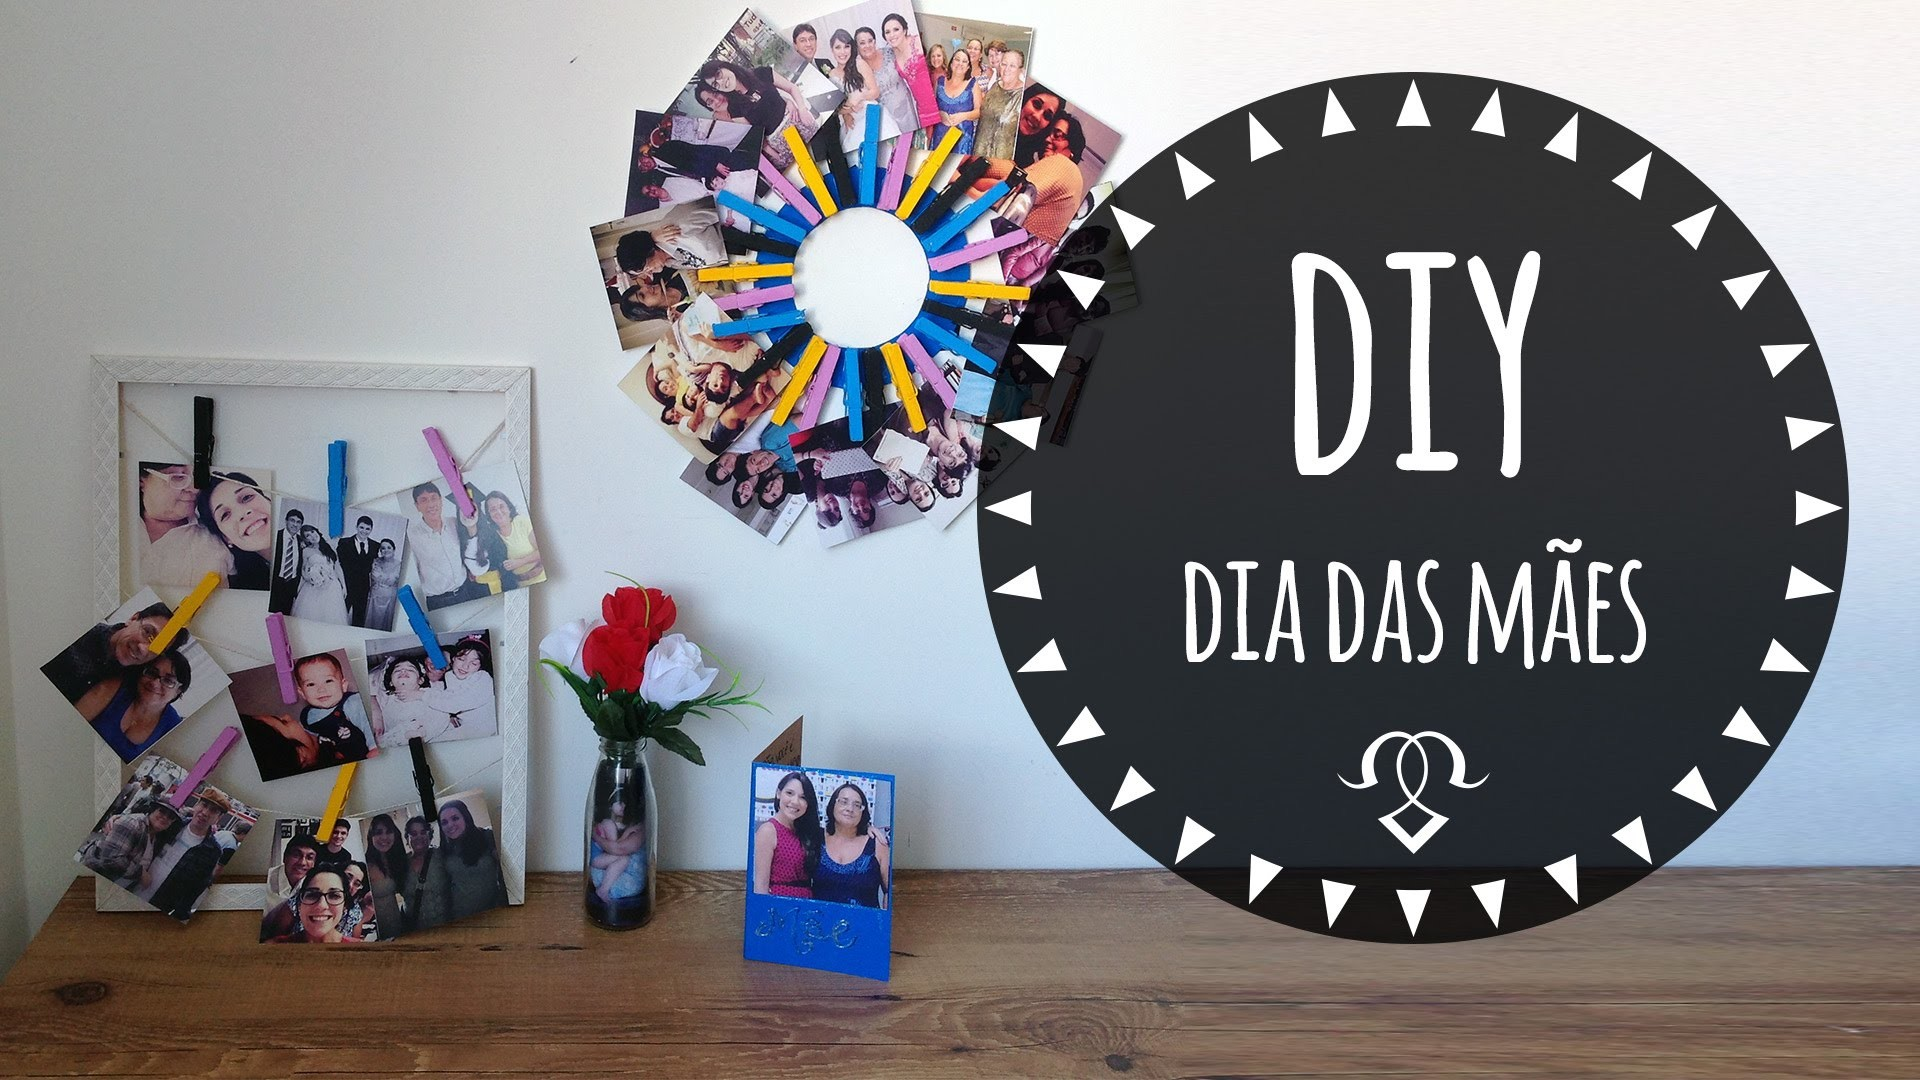 DIY- Dia das MÃES - Mother's day gift